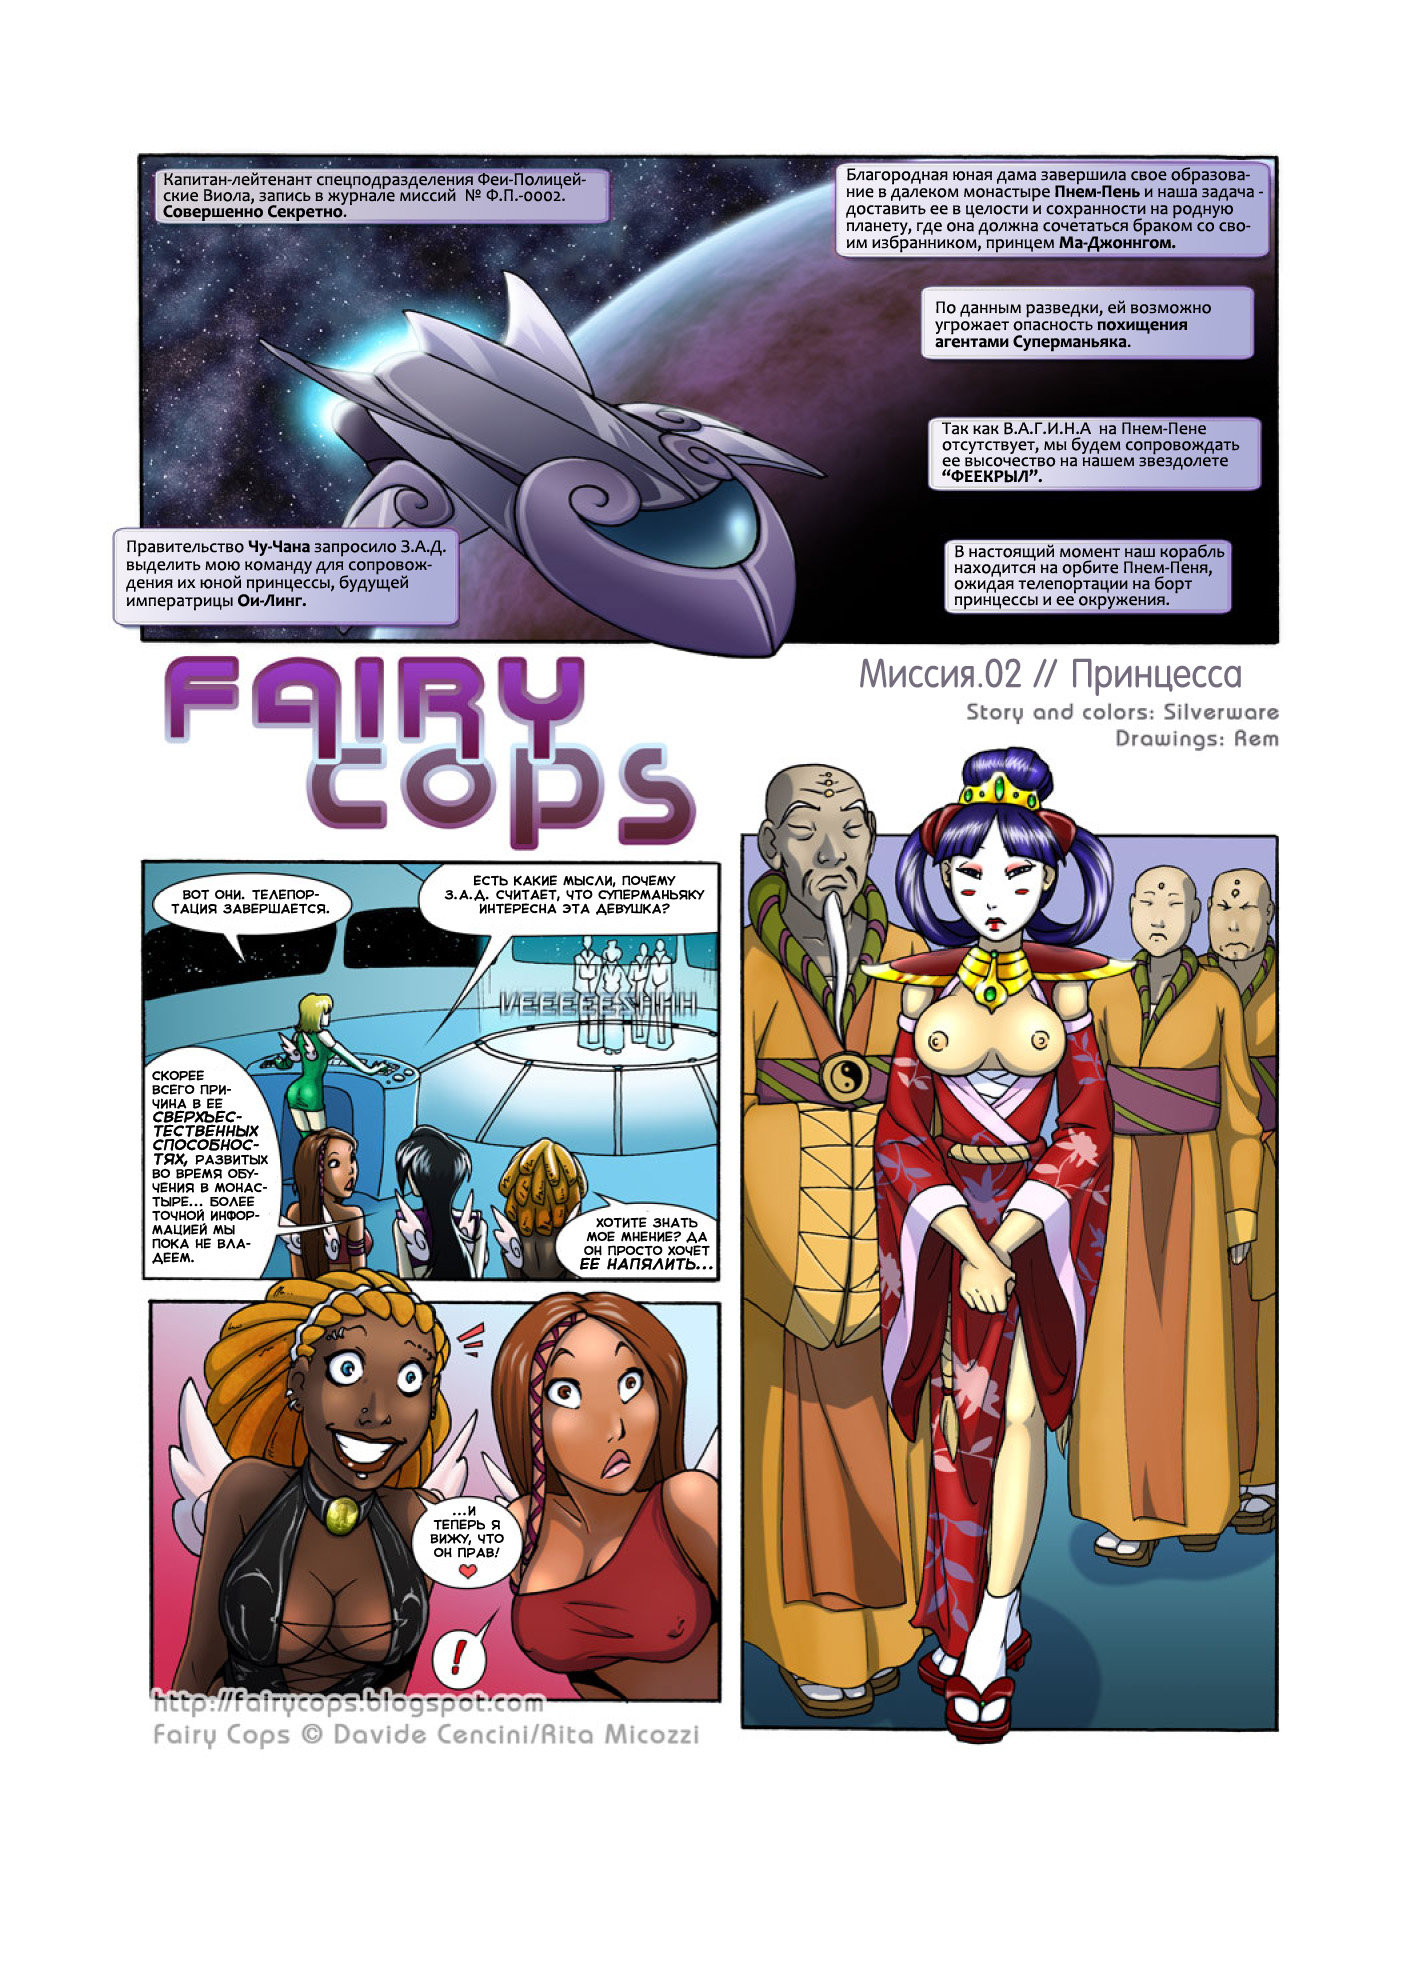 Fairy Cops - Mission.02 - The Princess